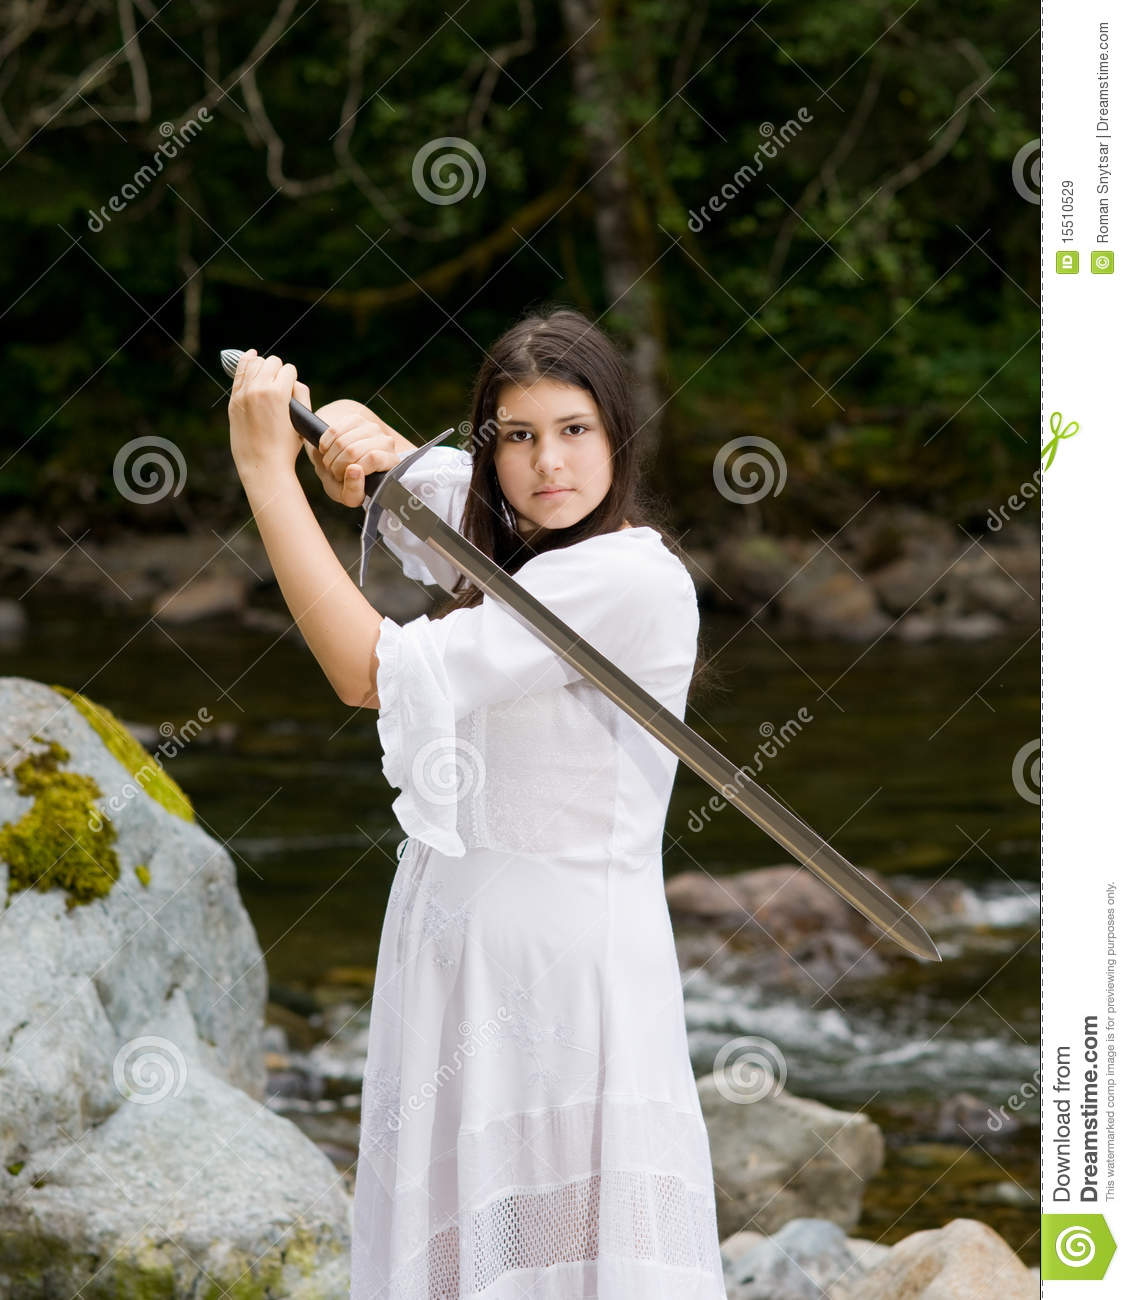 Japn Girl Sword Wallpaper Young Girl In White Dress With Two Handed Sword Royalty